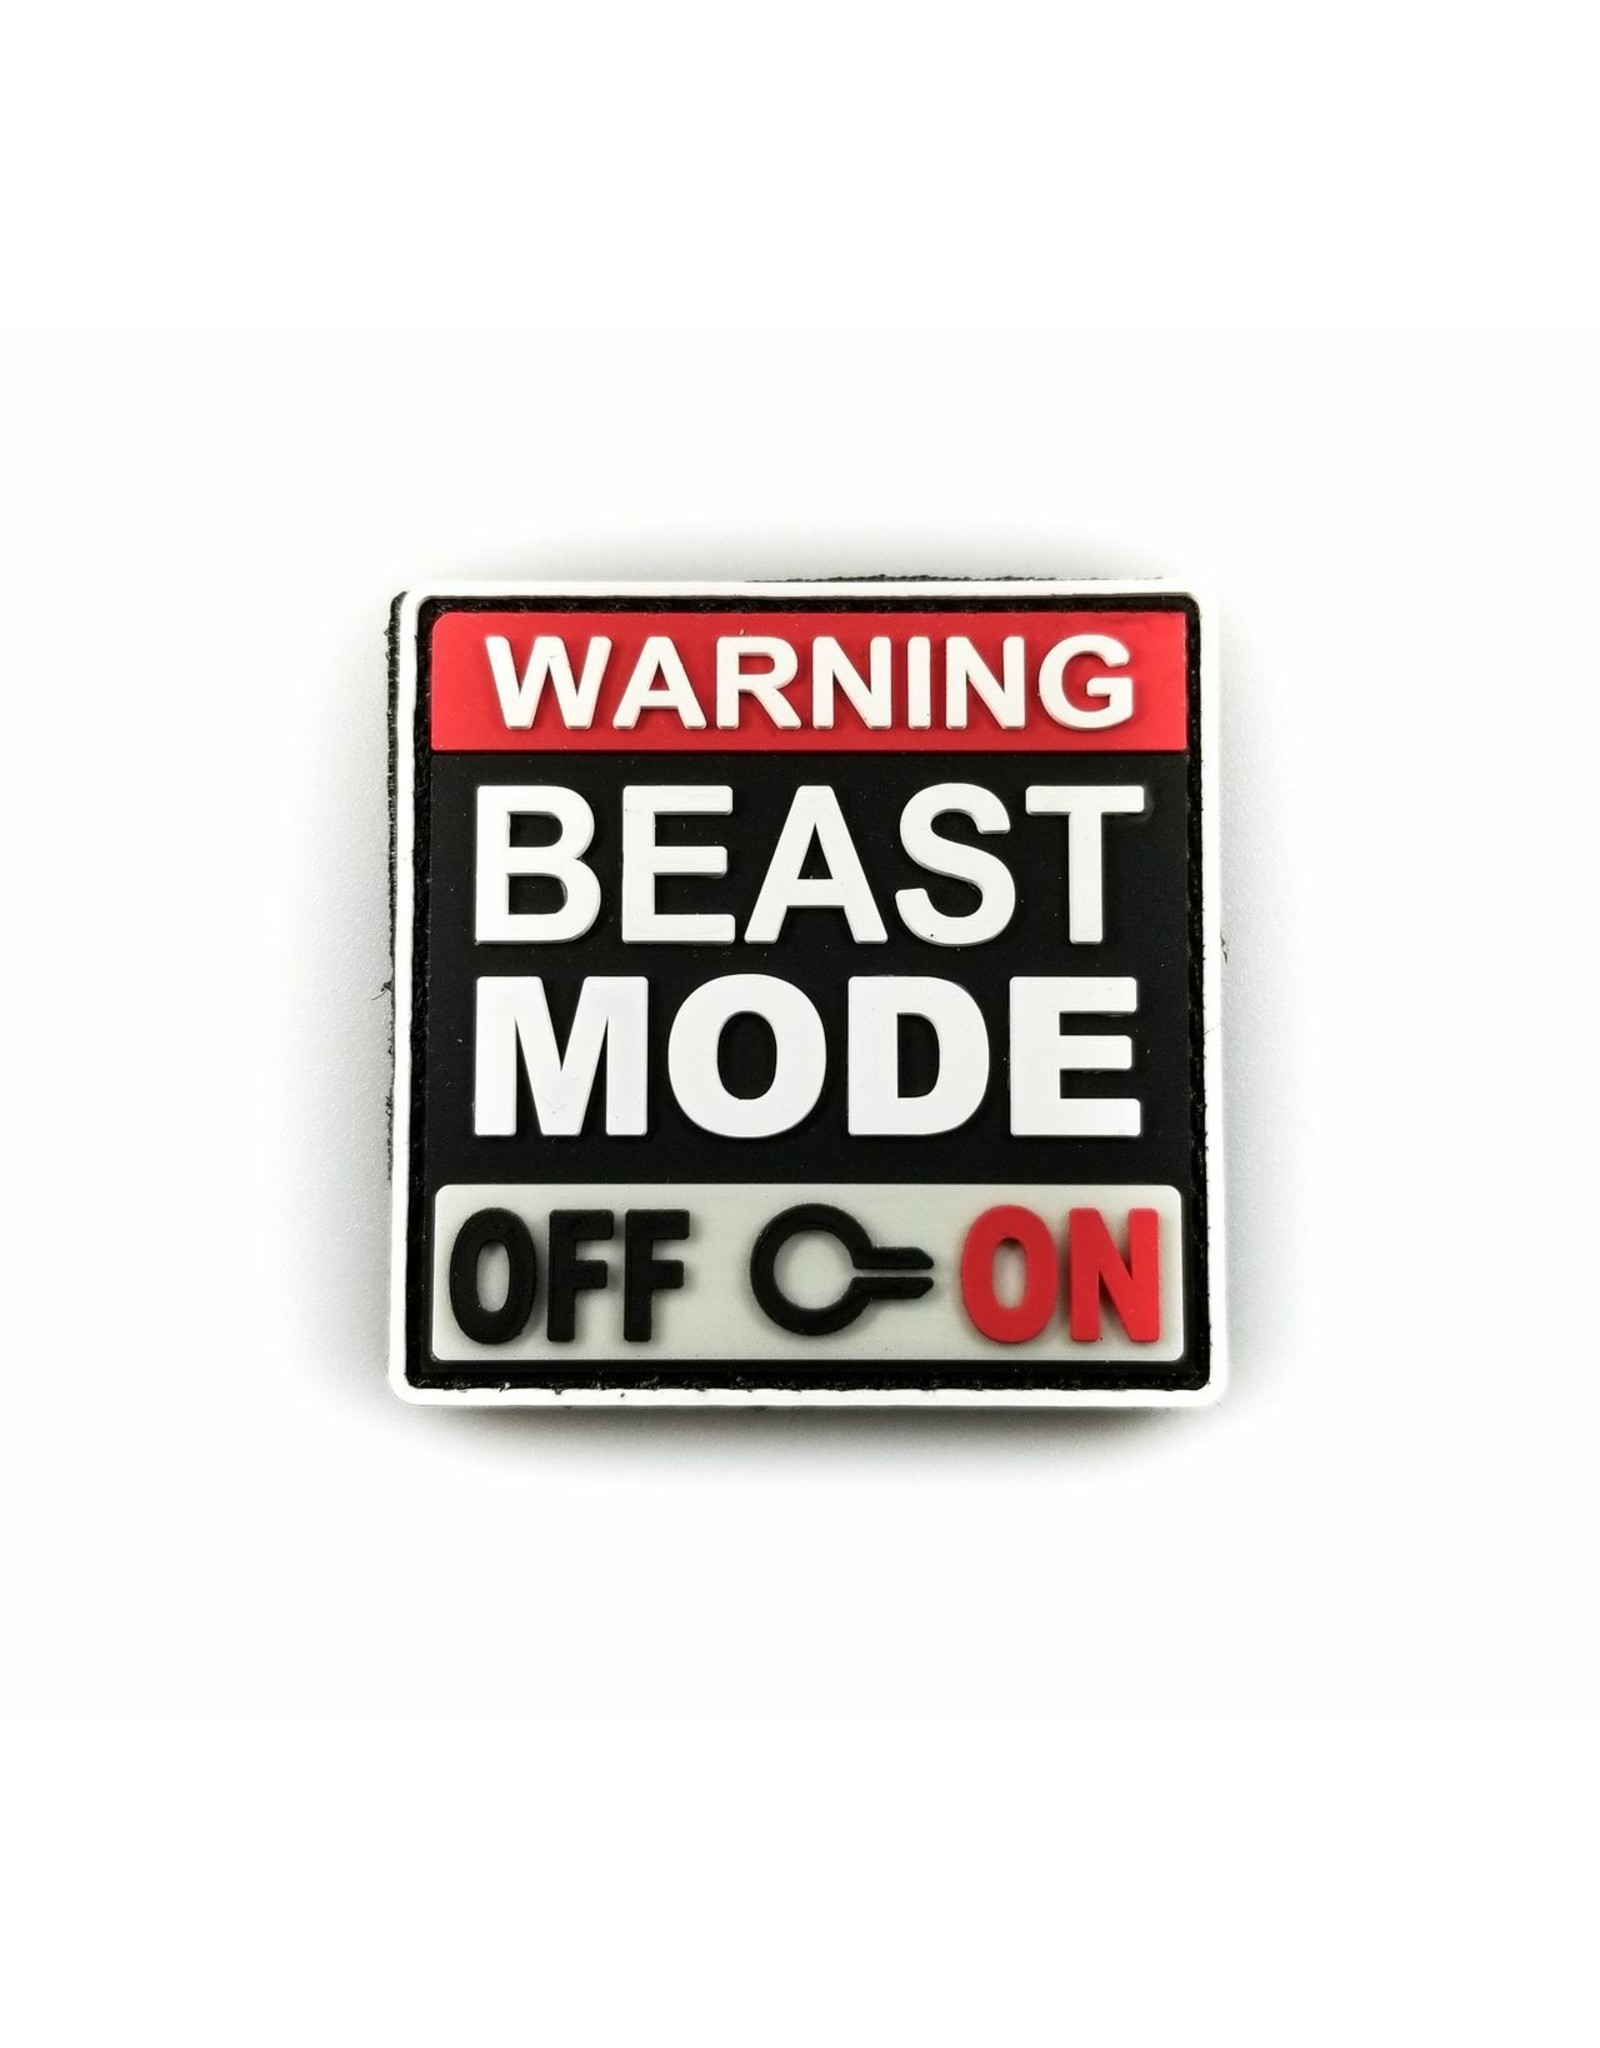 TIC Patch - WARNING BEAST MODE